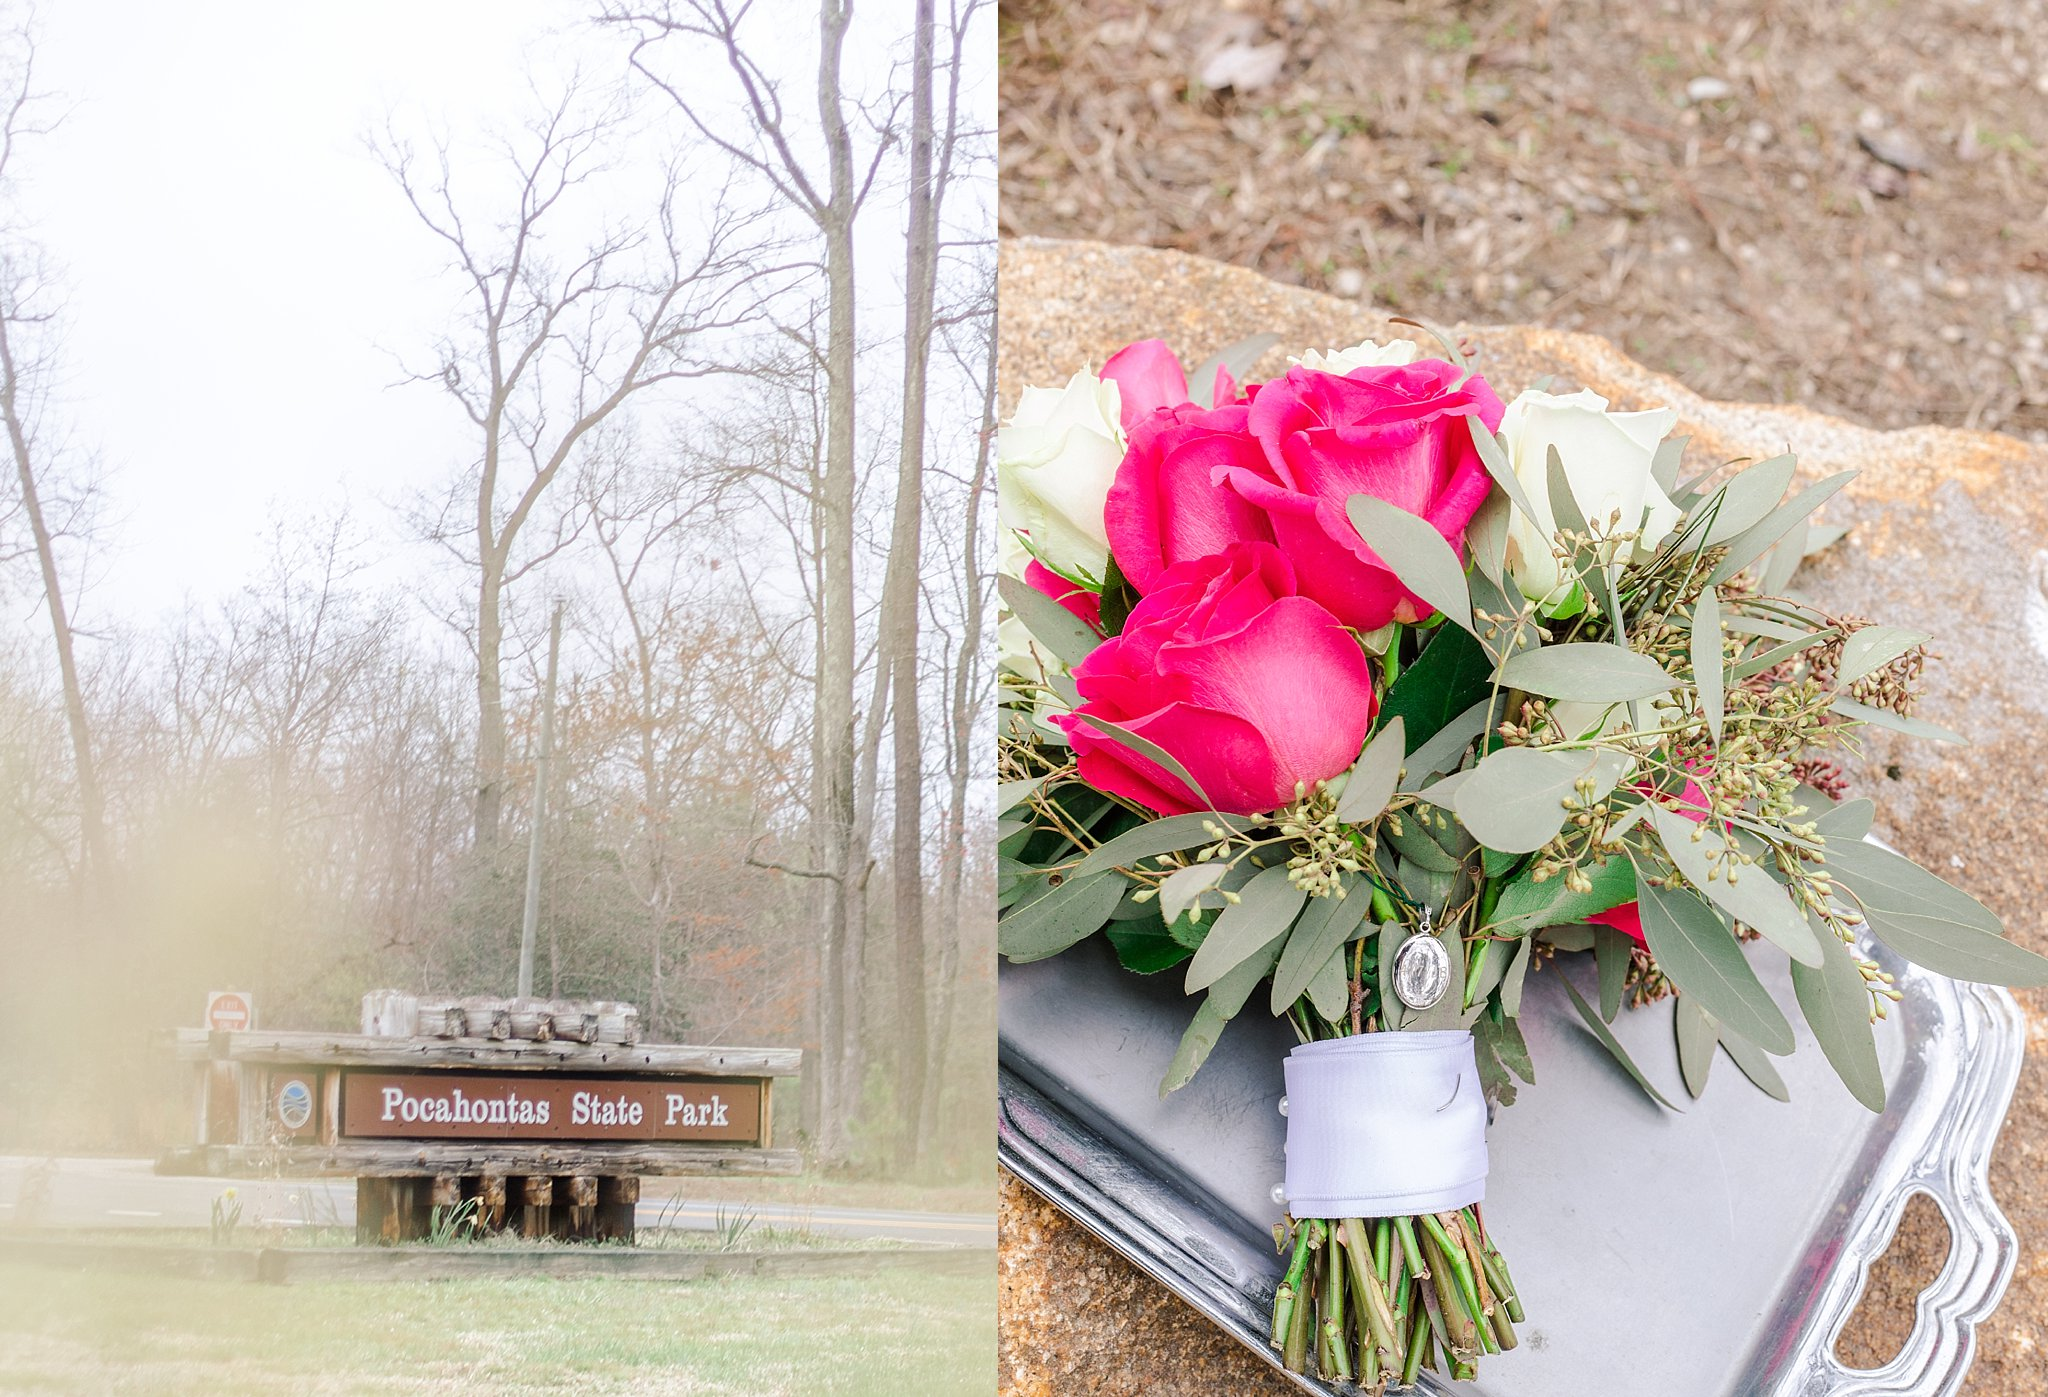 Pocahontas State Park Wedding - Richmond, Virginia